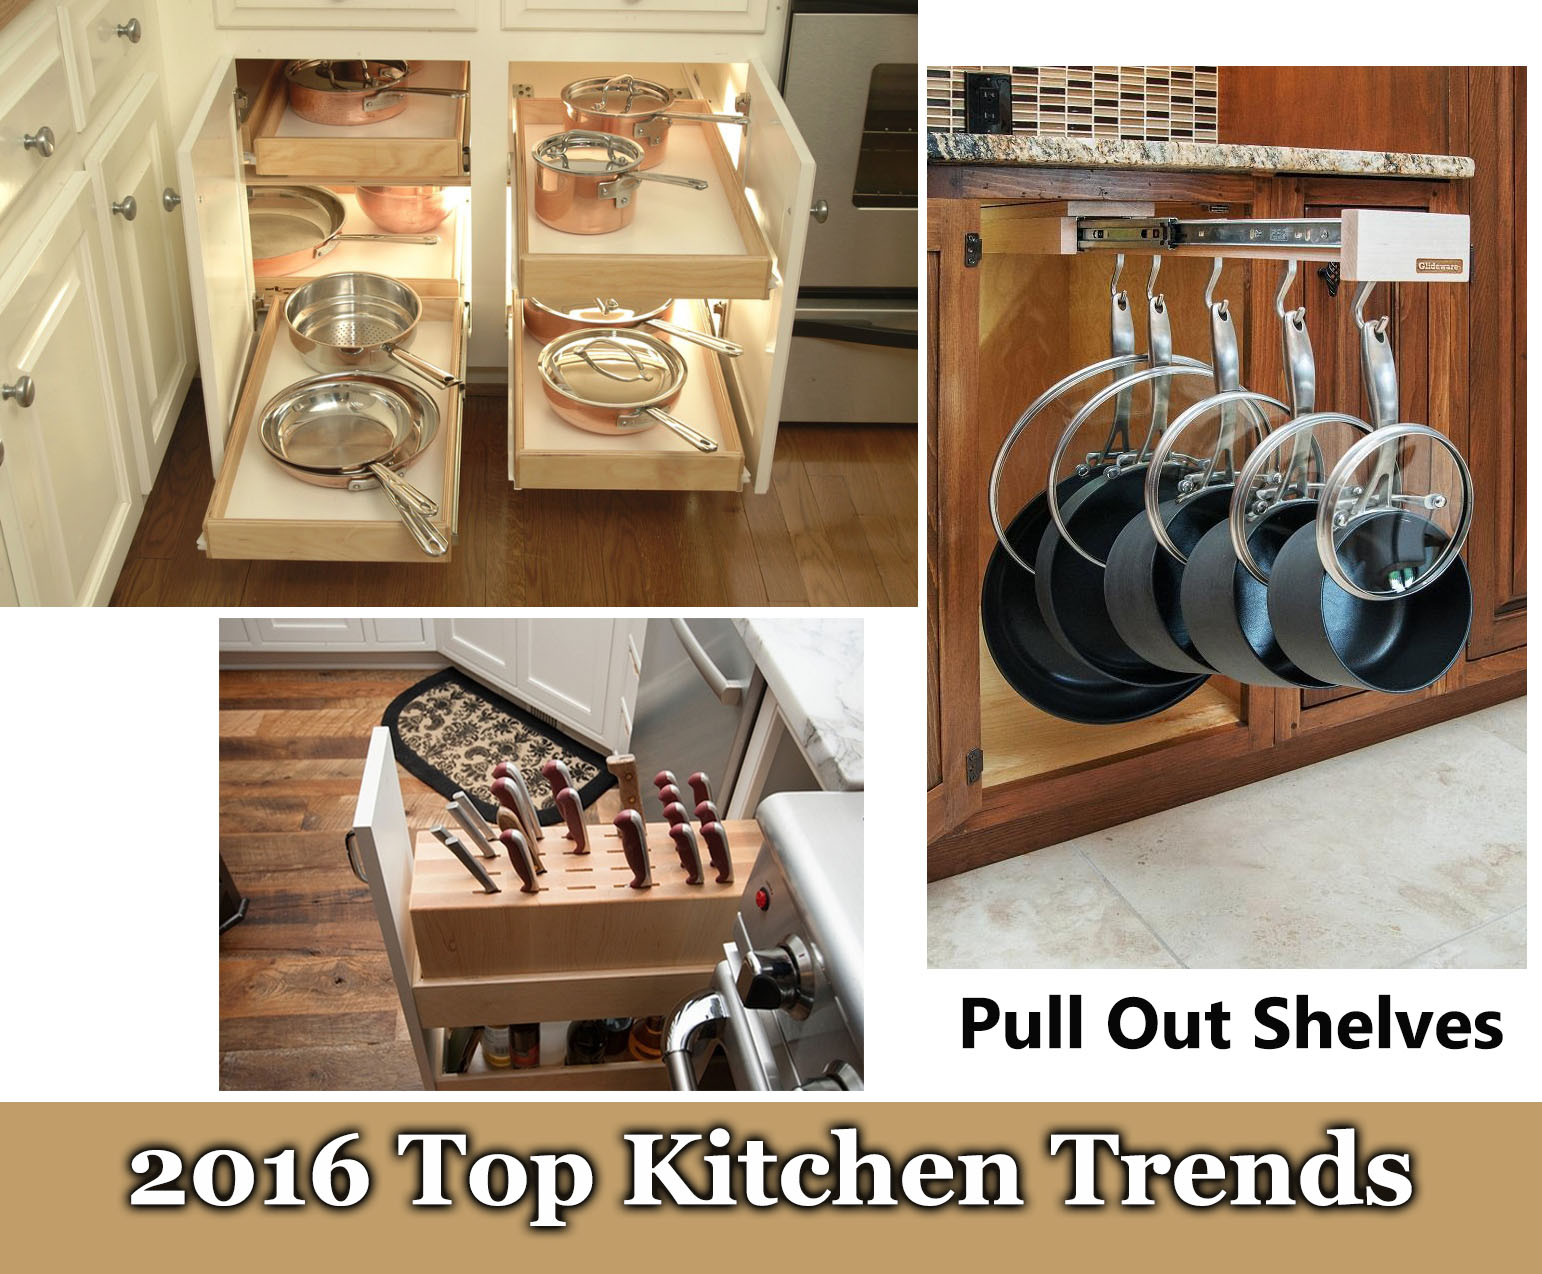 Pull Out Shelves For Kitchen Modular Kitchens 9 Top Ideas To Make Your Home Modern And Stylish